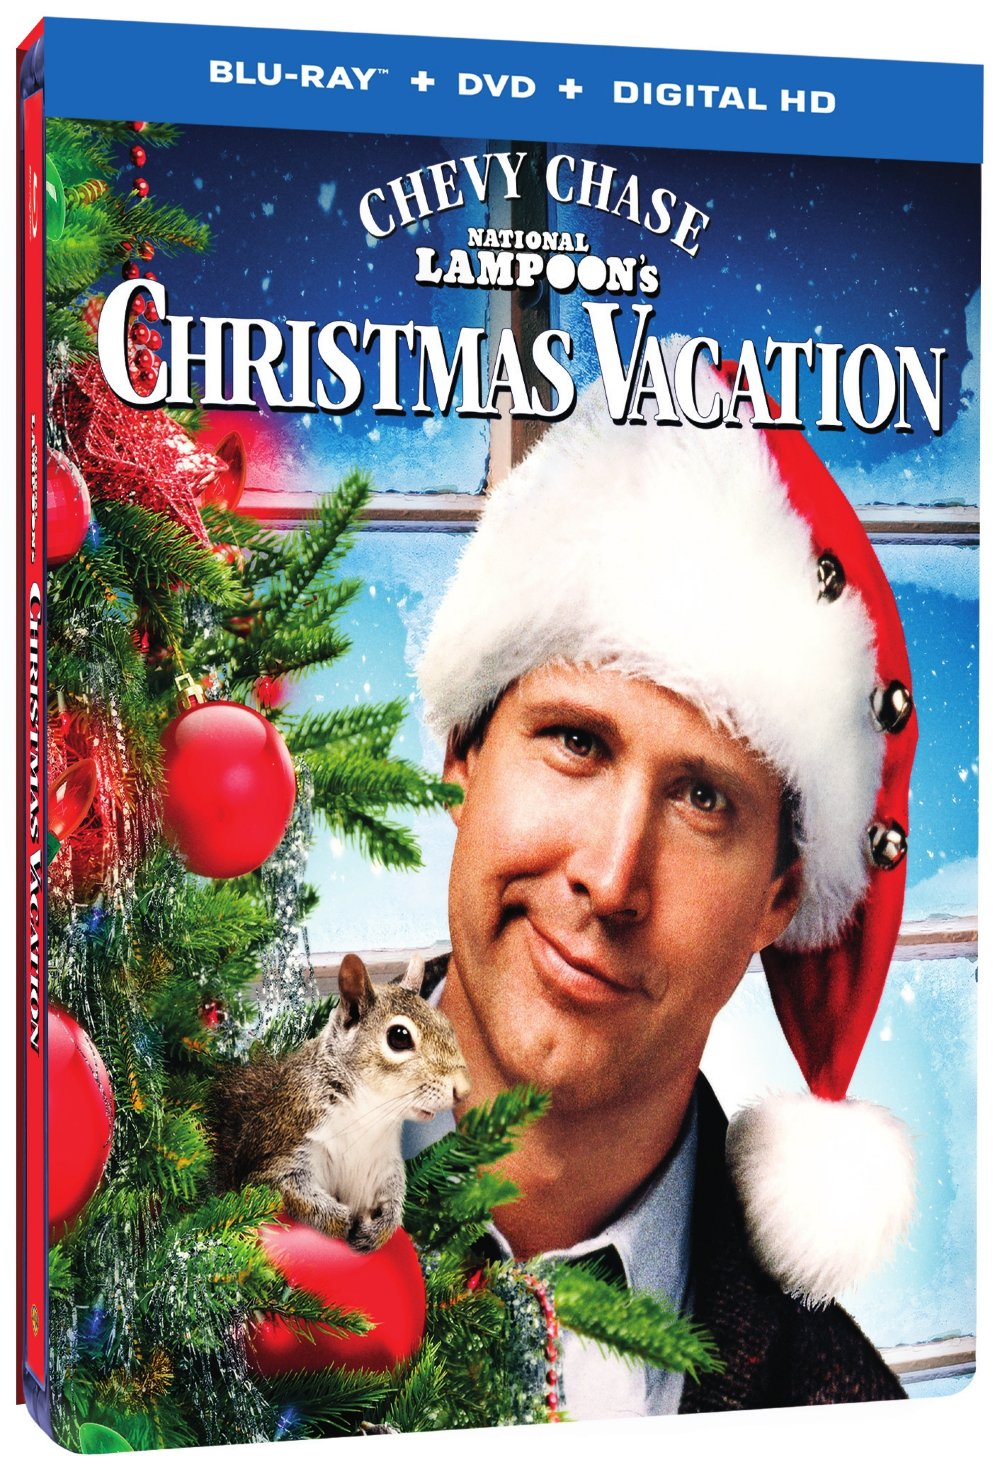 National Lampoon's Christmas Vacation (Blu-ray SteelBook